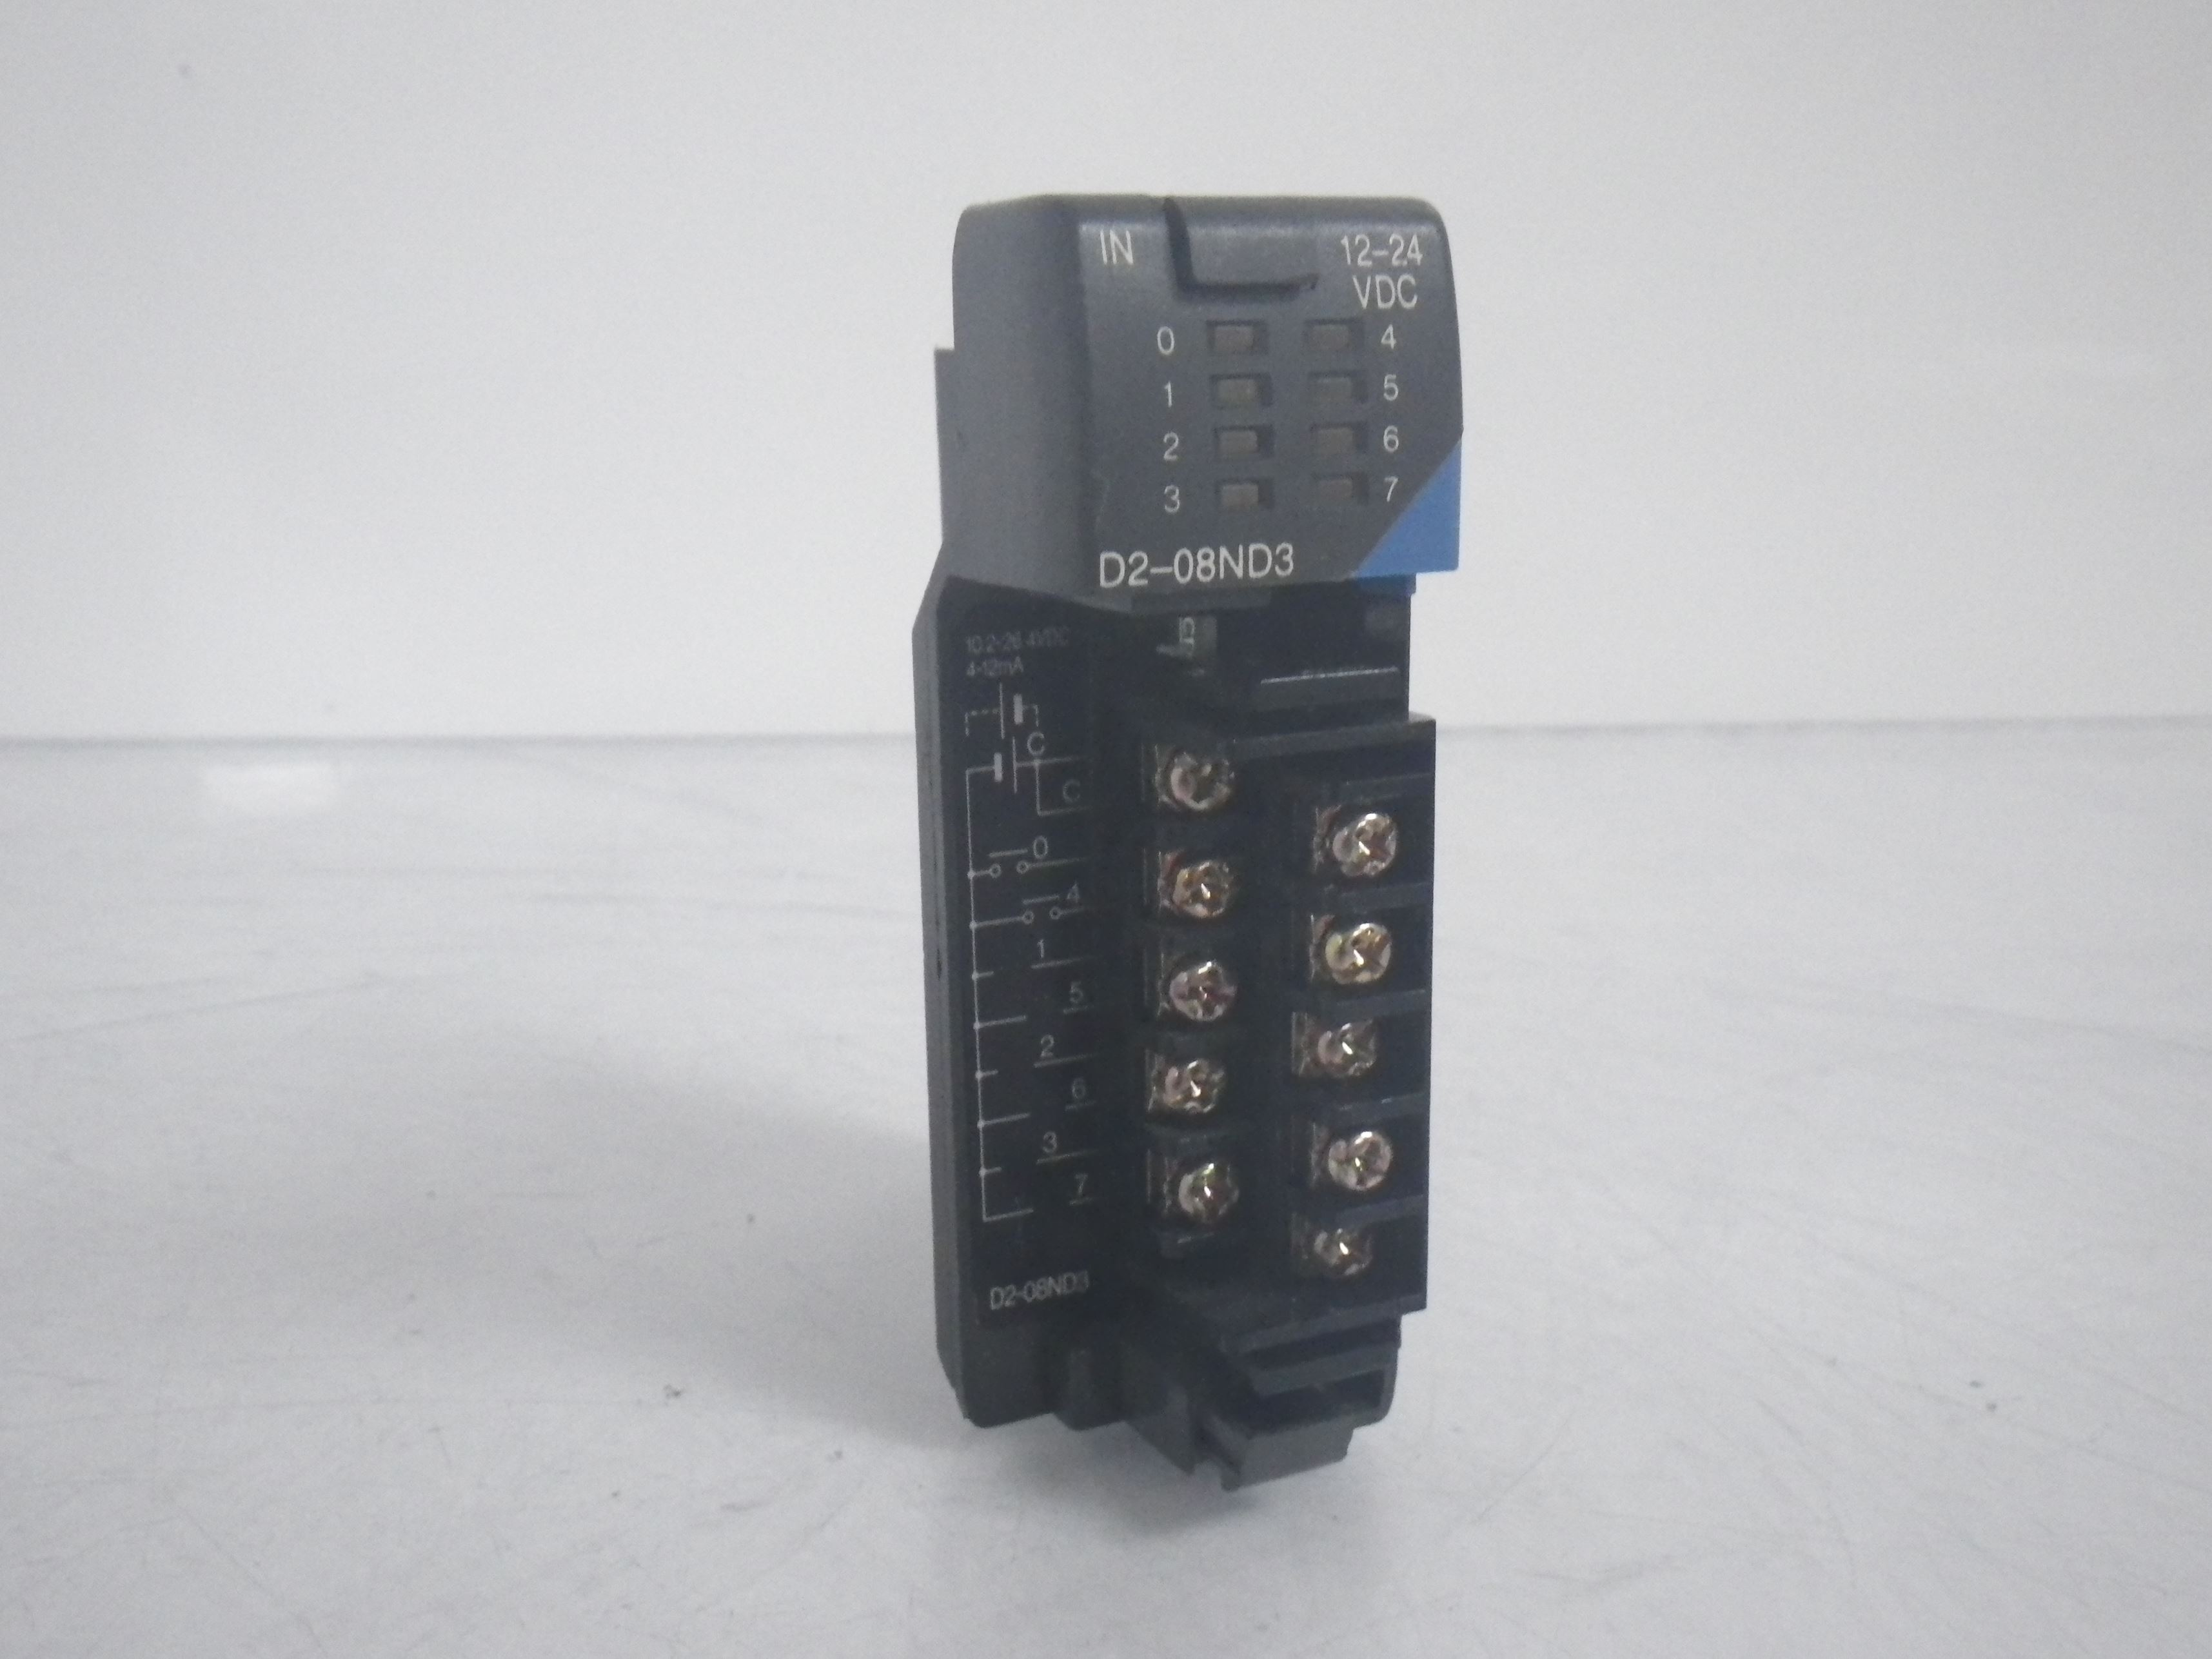 Details about D2-08ND3 PLC Direct Koyo input module (Used and Tested)